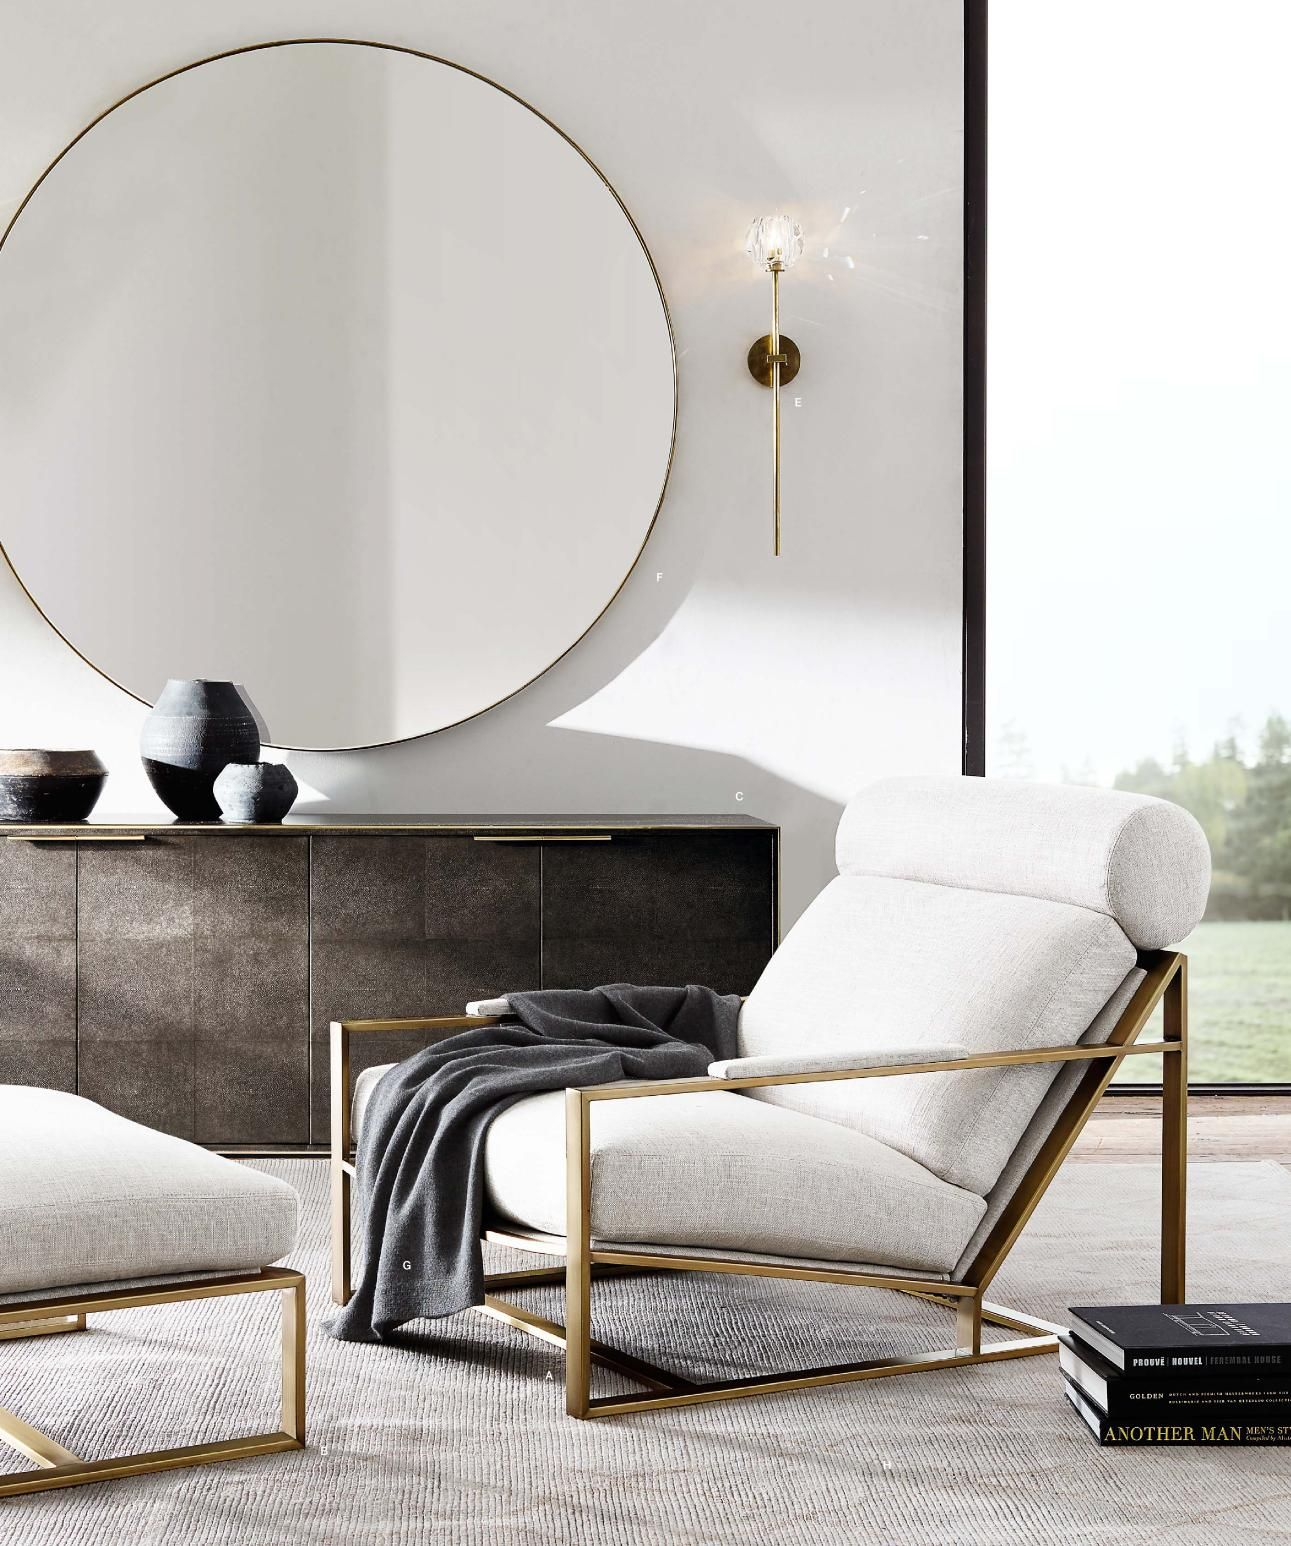 Rh modern sideboard and chair everything clean and elegant